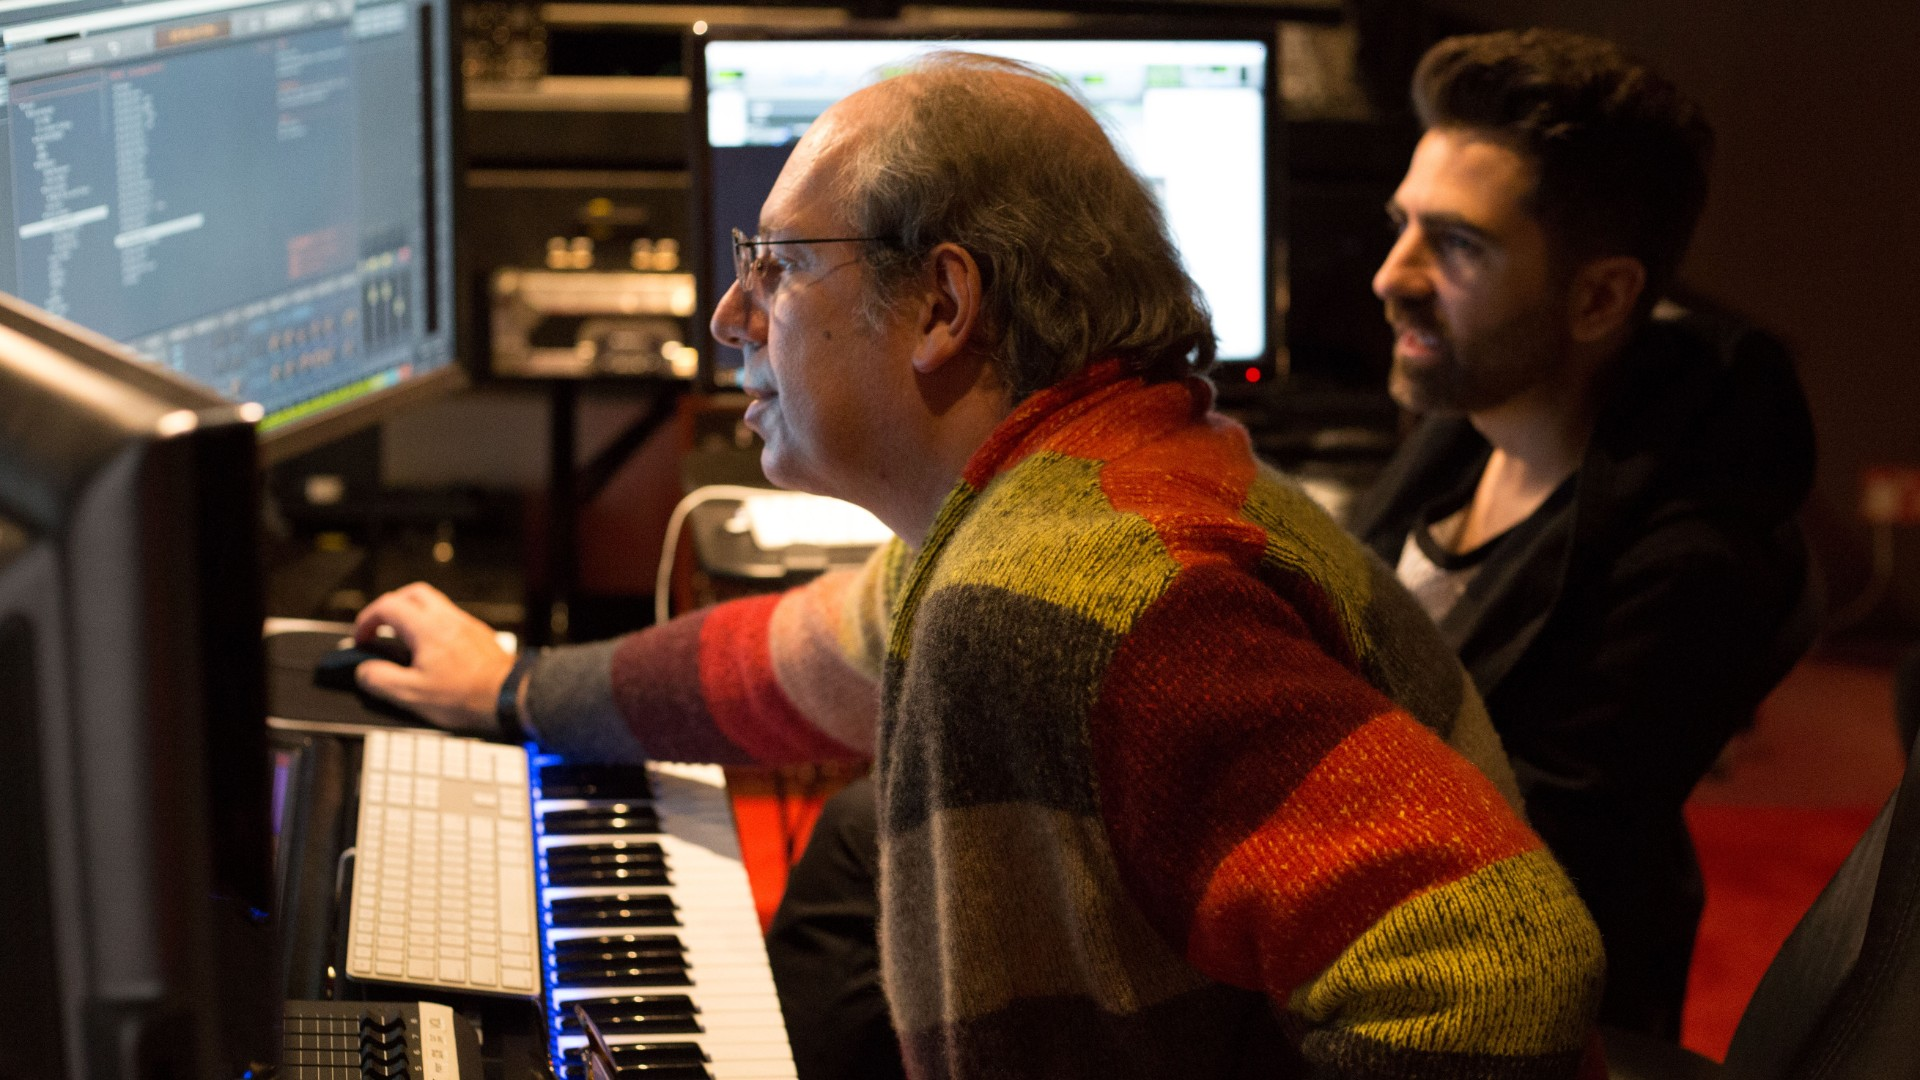 Hans Zimmer working with BMW on electric car sounds